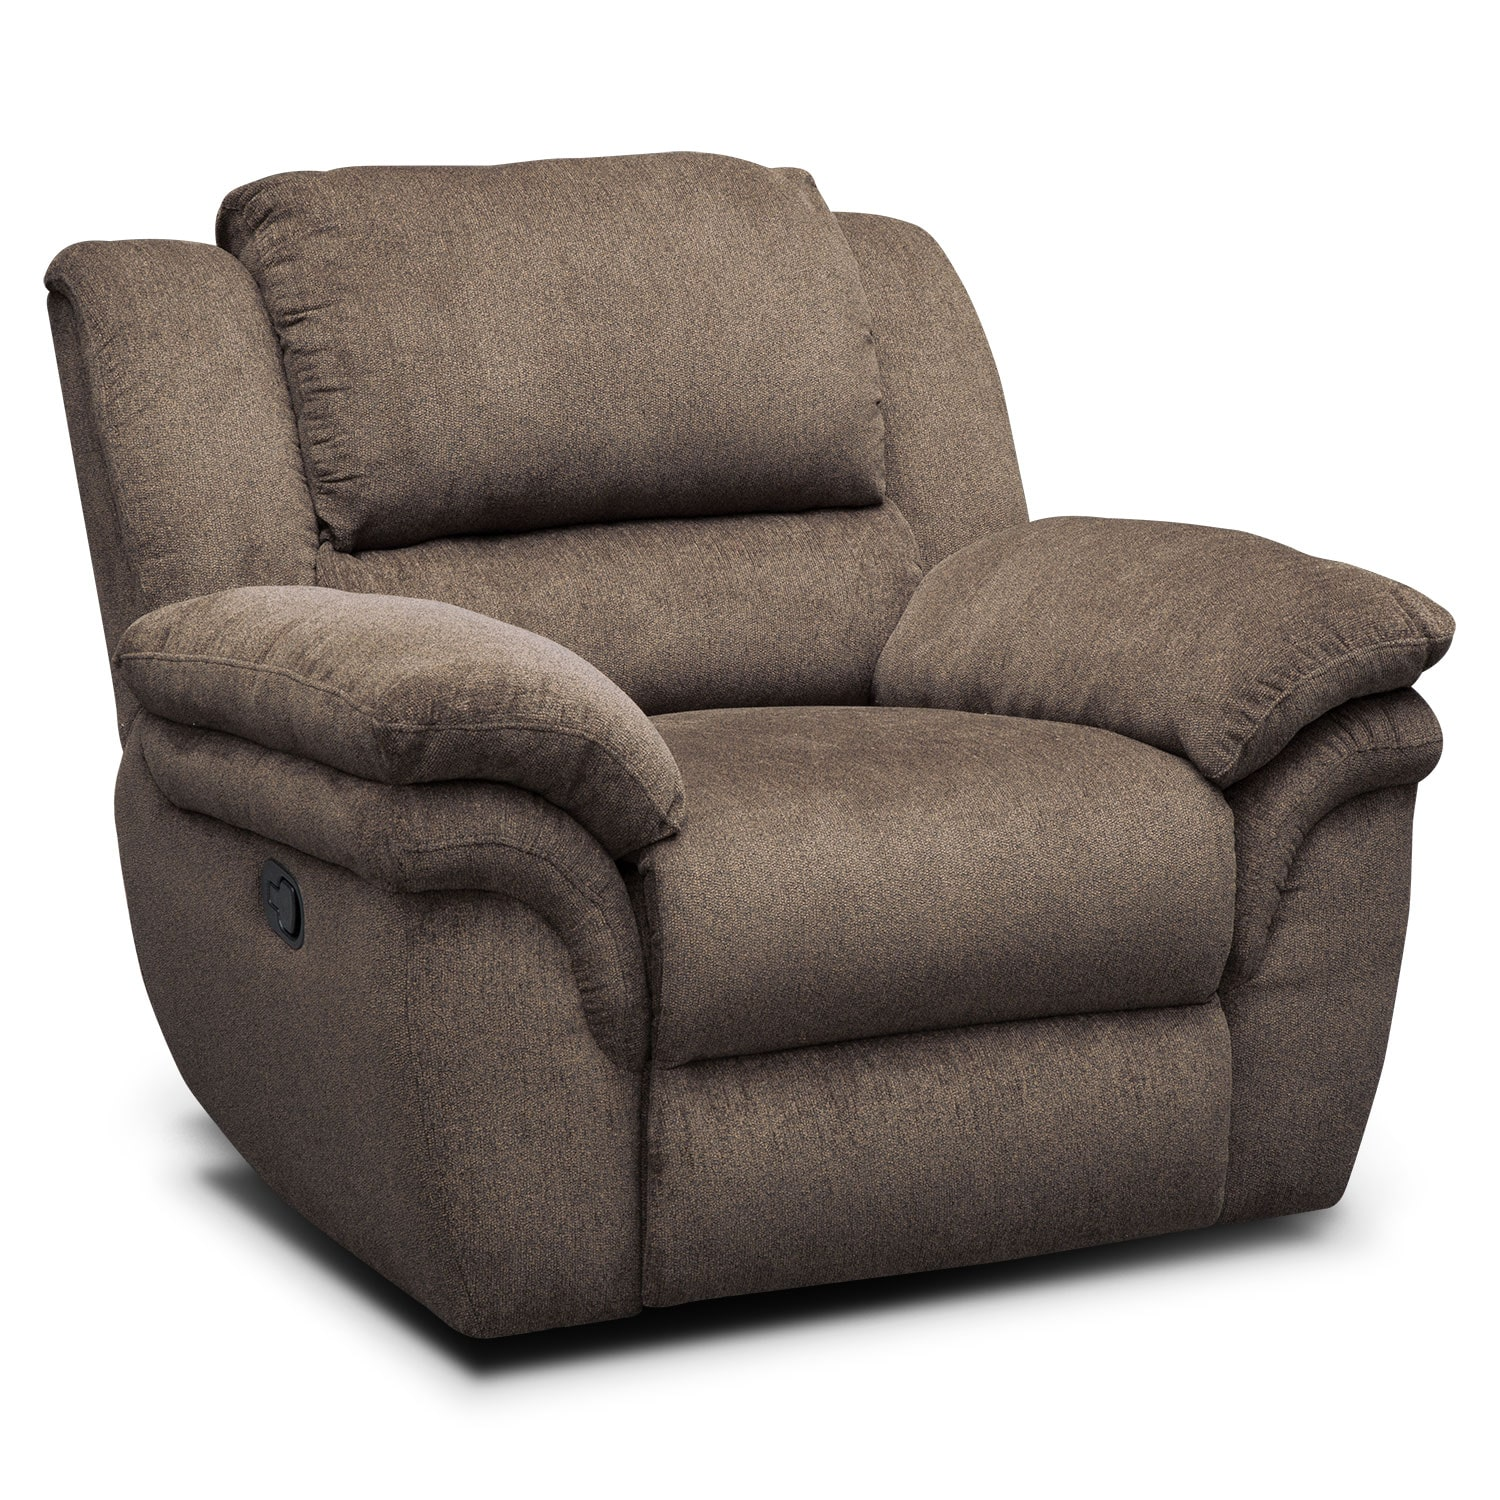 Aldo Manual Dual Reclining Sofa Loveseat and Recliner Set Mocha